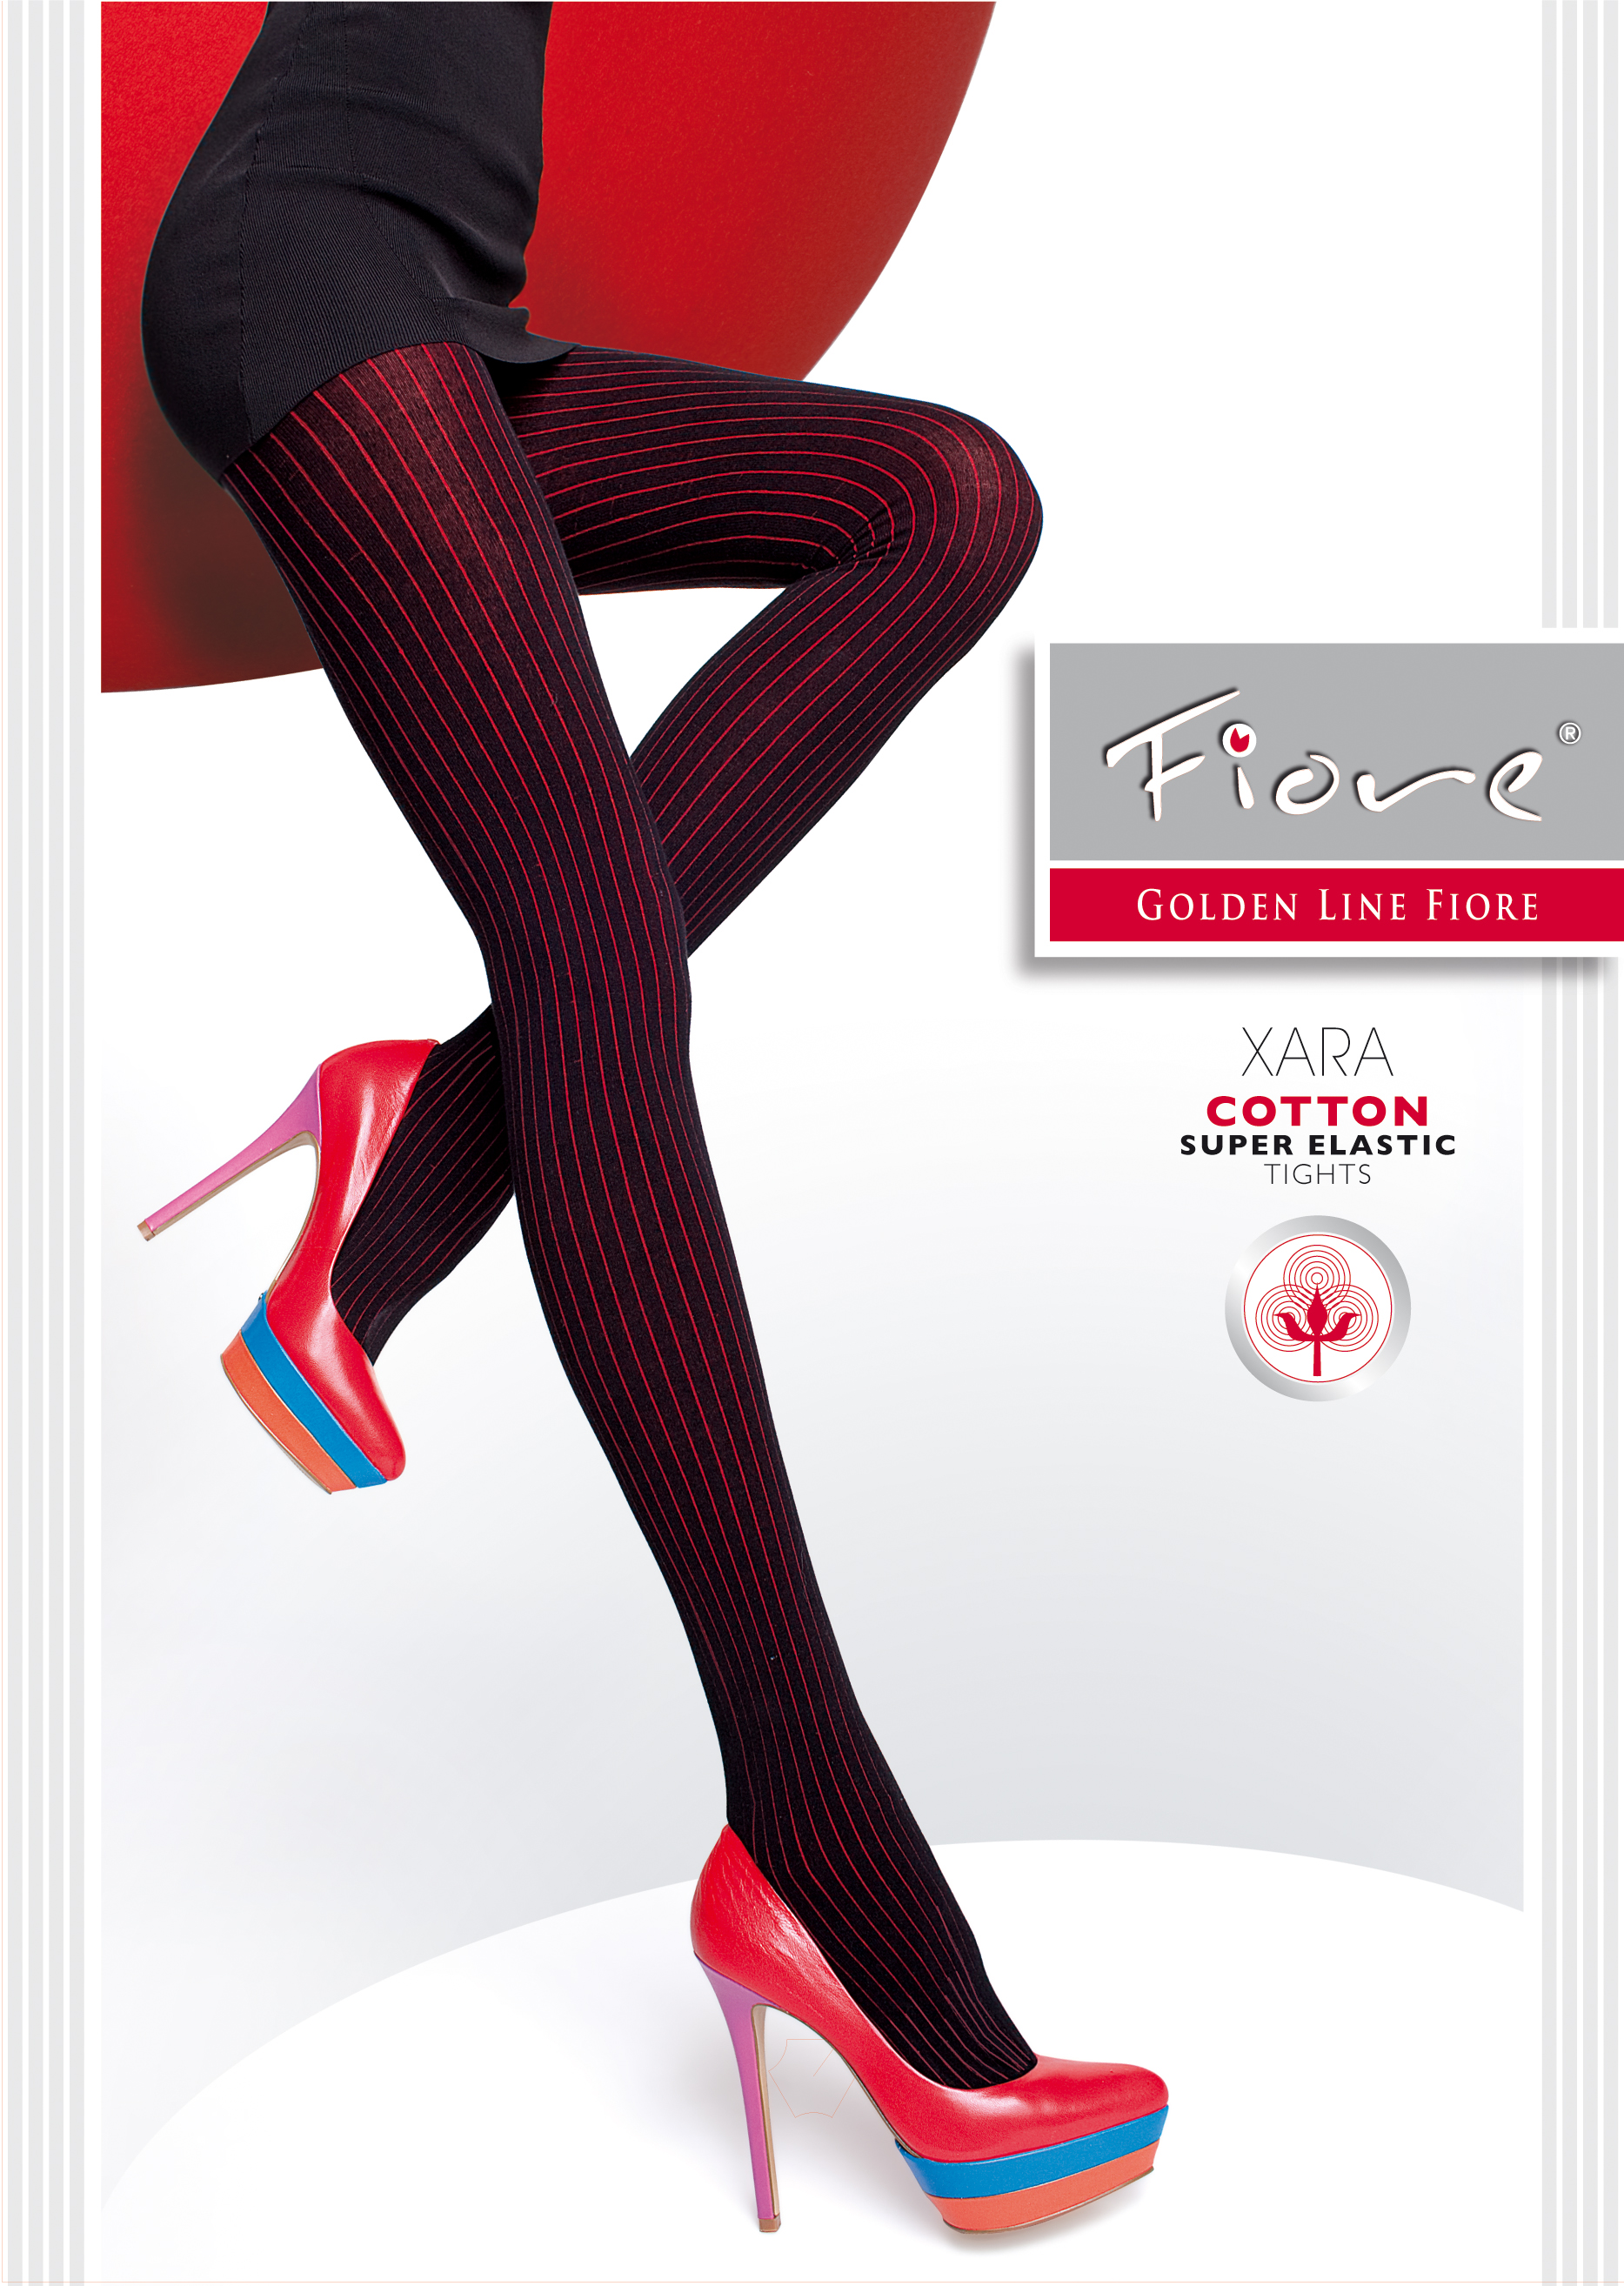 XARA_Cotton_Patterned_tights_Fiore